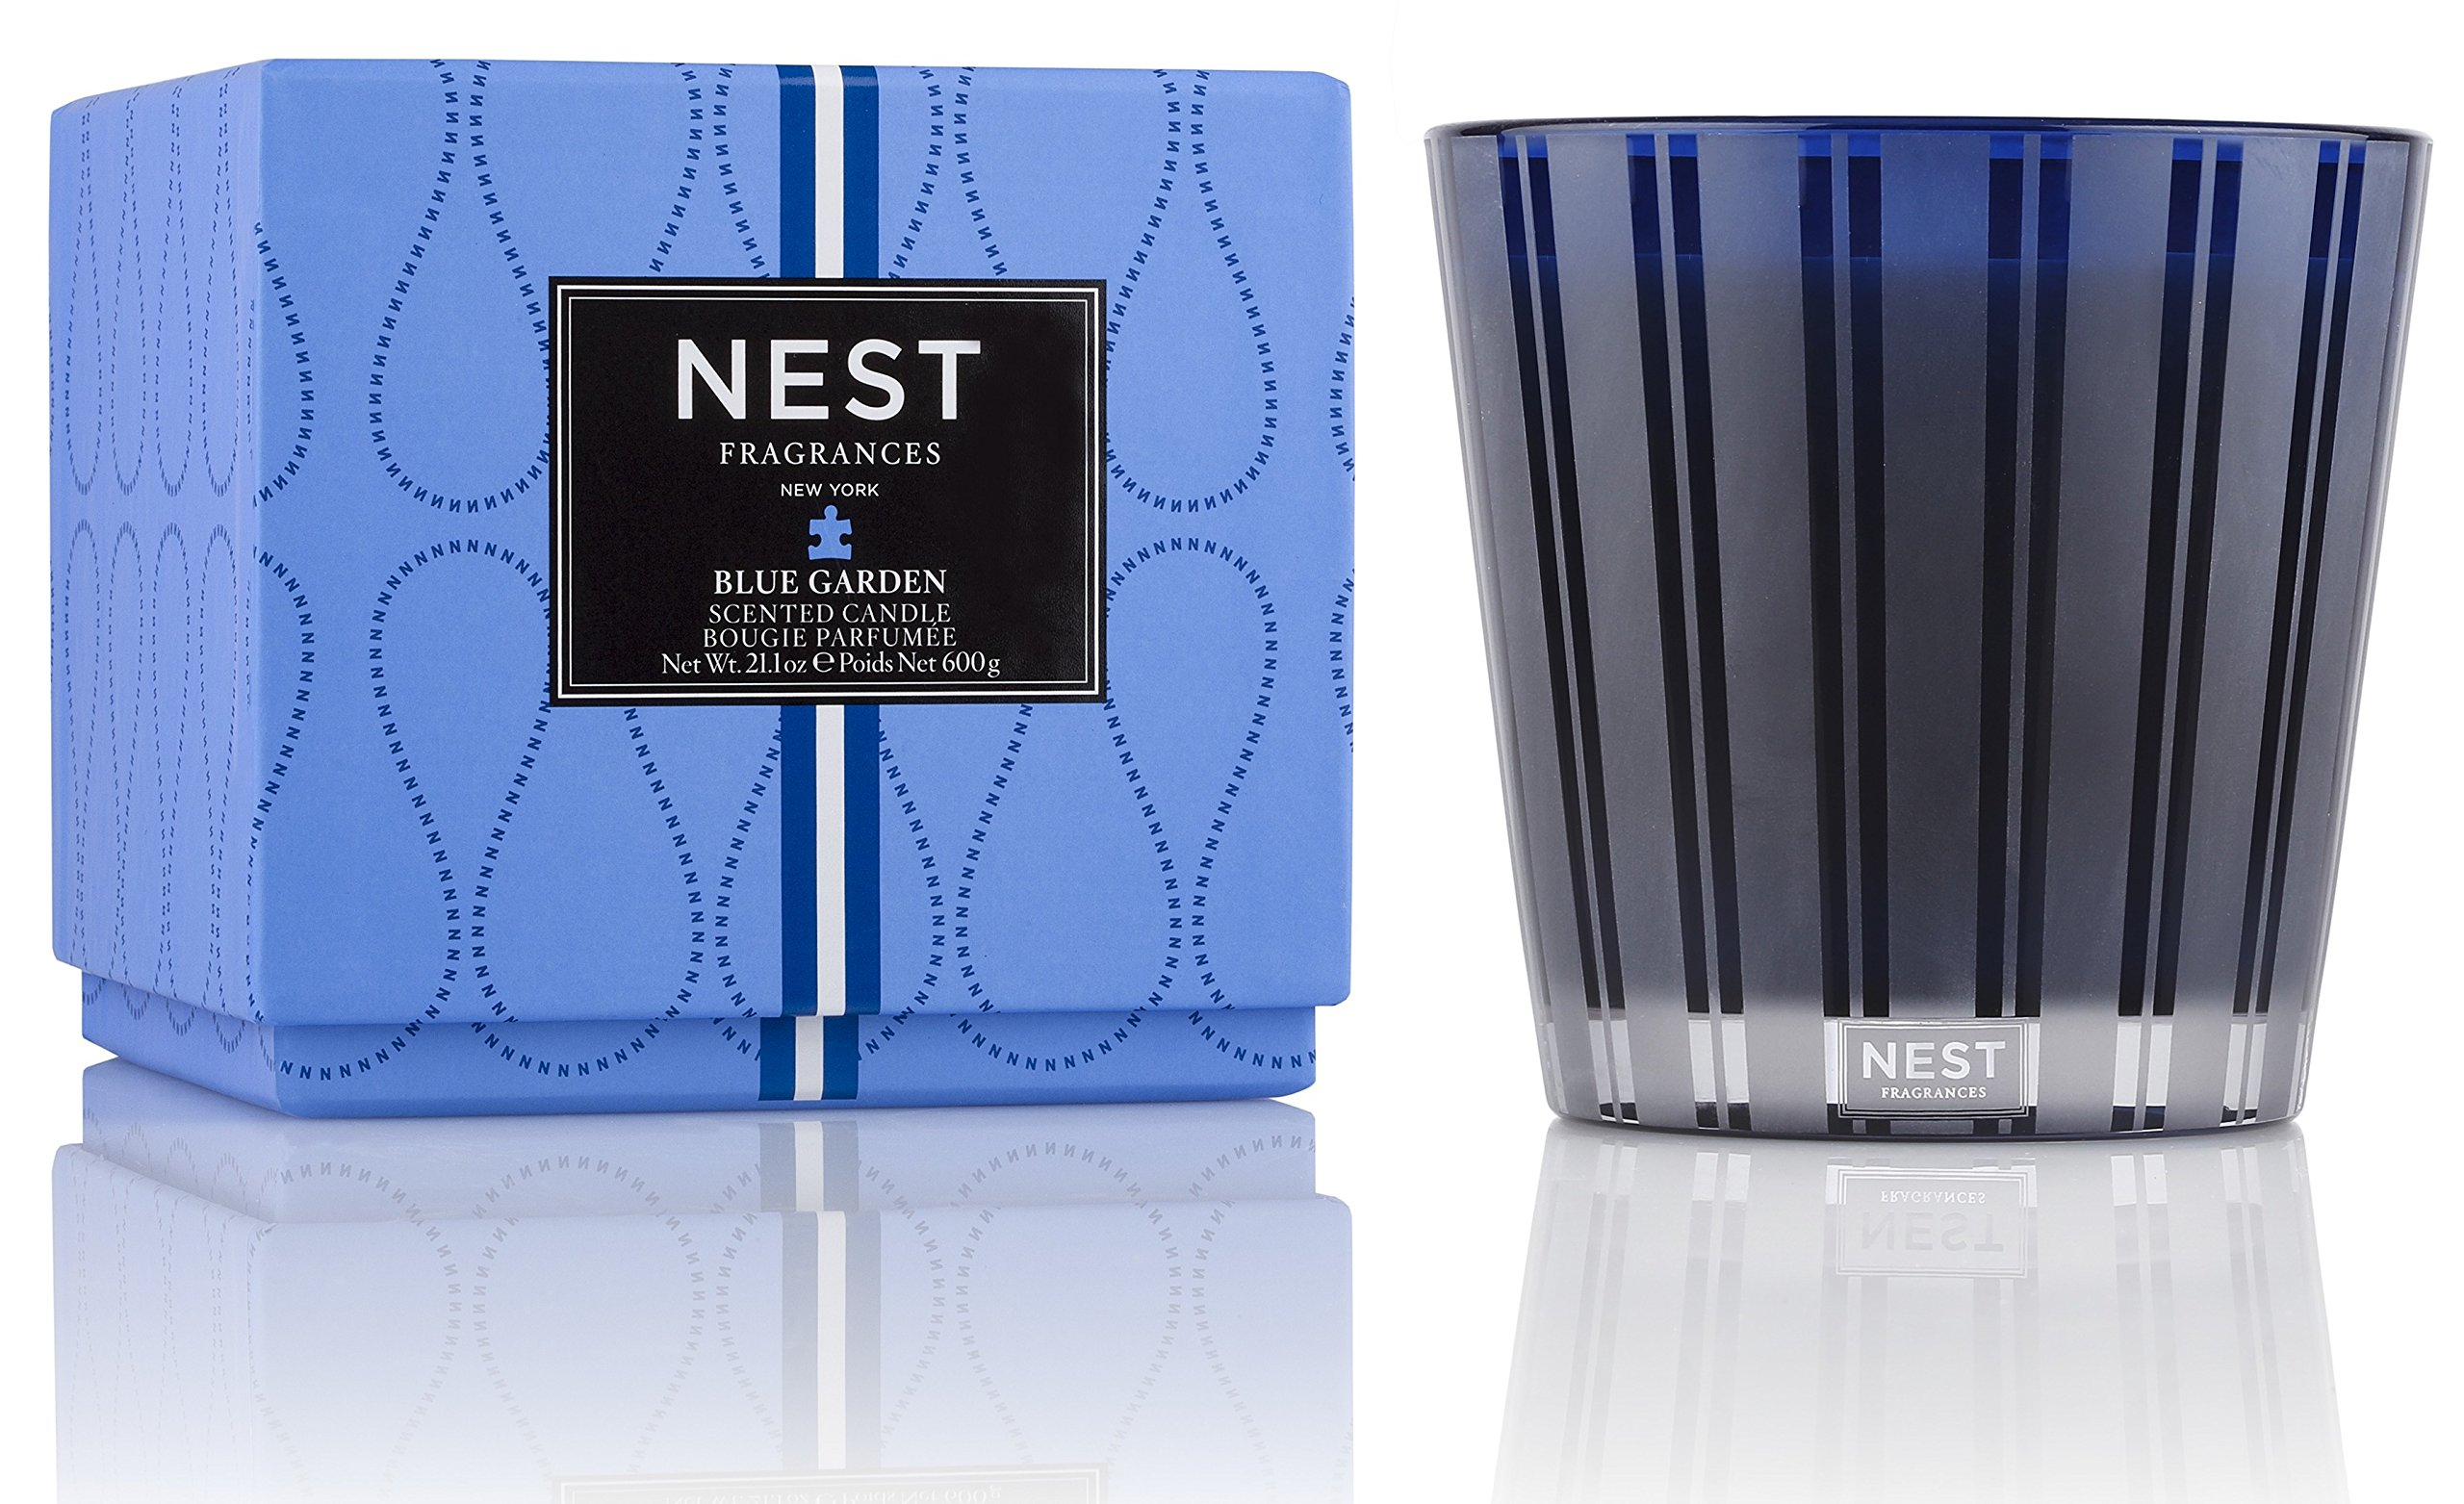 NEST Fragrances 3 Wick Candle- Blue Garden, 21.2 oz - 3-Wick Candle 600 g / 21.2 Oz. NEST Fragrances blue Garden 3-wick candle fragrance notes include, blue hydrangea, hyacinth and forget-me-nots are blended with fresh Green notes and a dew drop accord to create the aroma of a lush Floral Garden This special edition blue glass vessel are designed to compliment the beauty of its surroundings; the classic shape and Modern stripe etching will complement any decor - living-room-decor, living-room, candles - 81Nss8RNeGL -